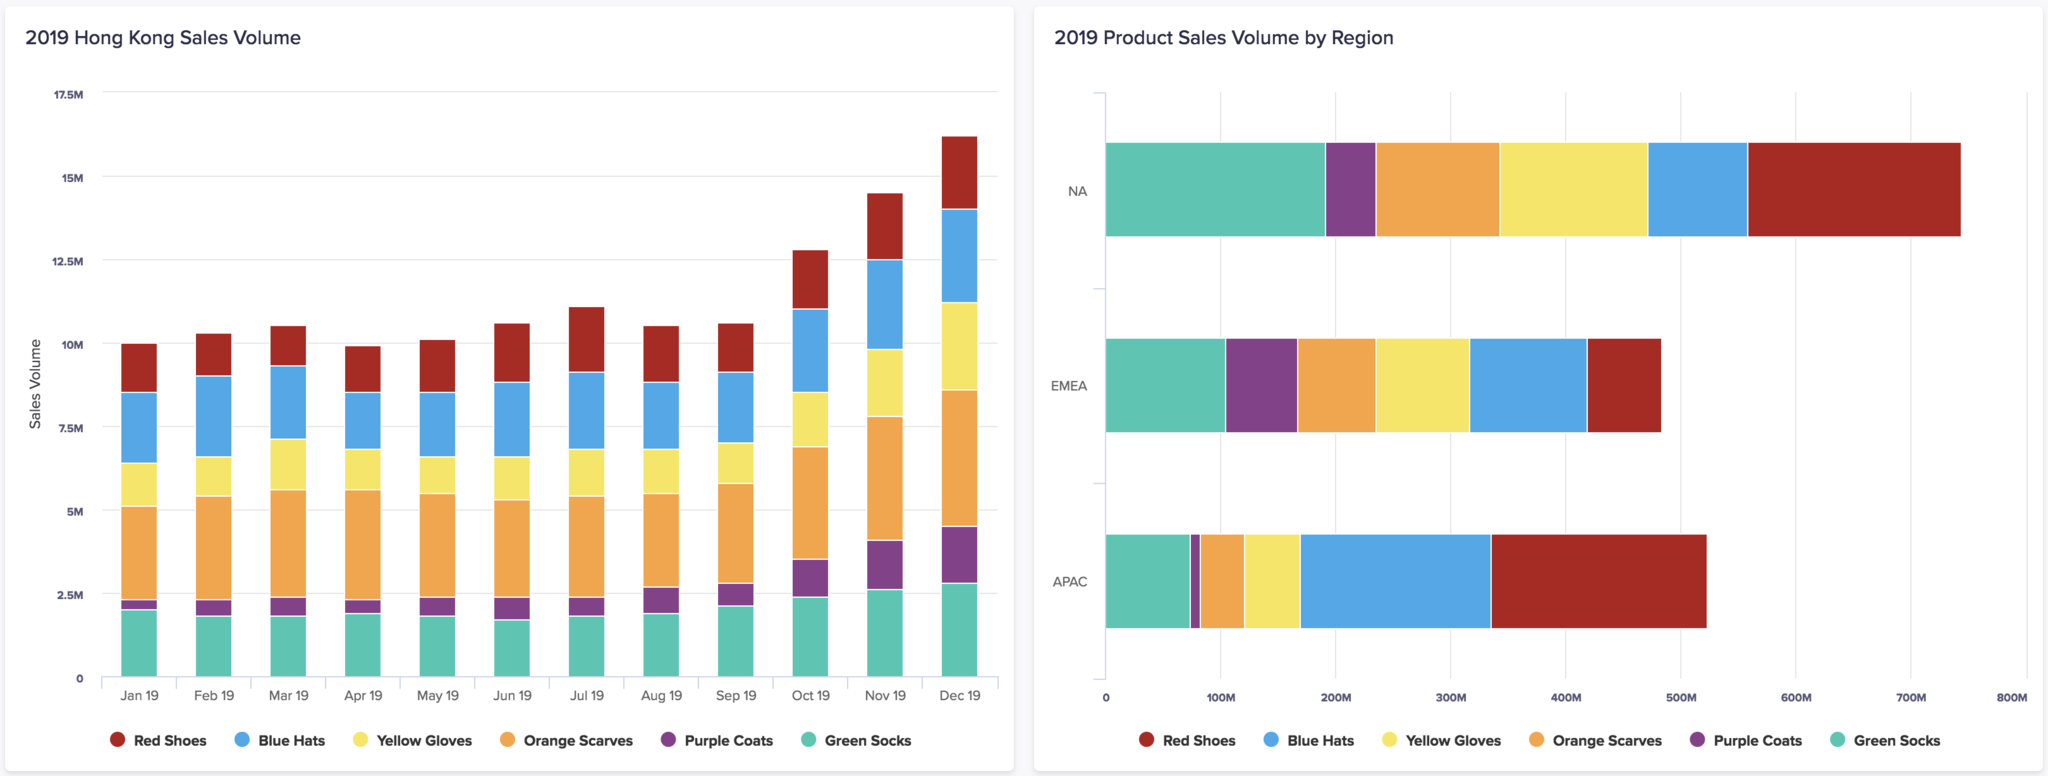 A stacked column chart on the left, and a stacked bar chart on the right. The stacked column chart shows the relative sales of different products in Hong Kong for each month of 2019. The bar chart shows the relative sales of different products within NA, EMEA and APAC regions for 2019.